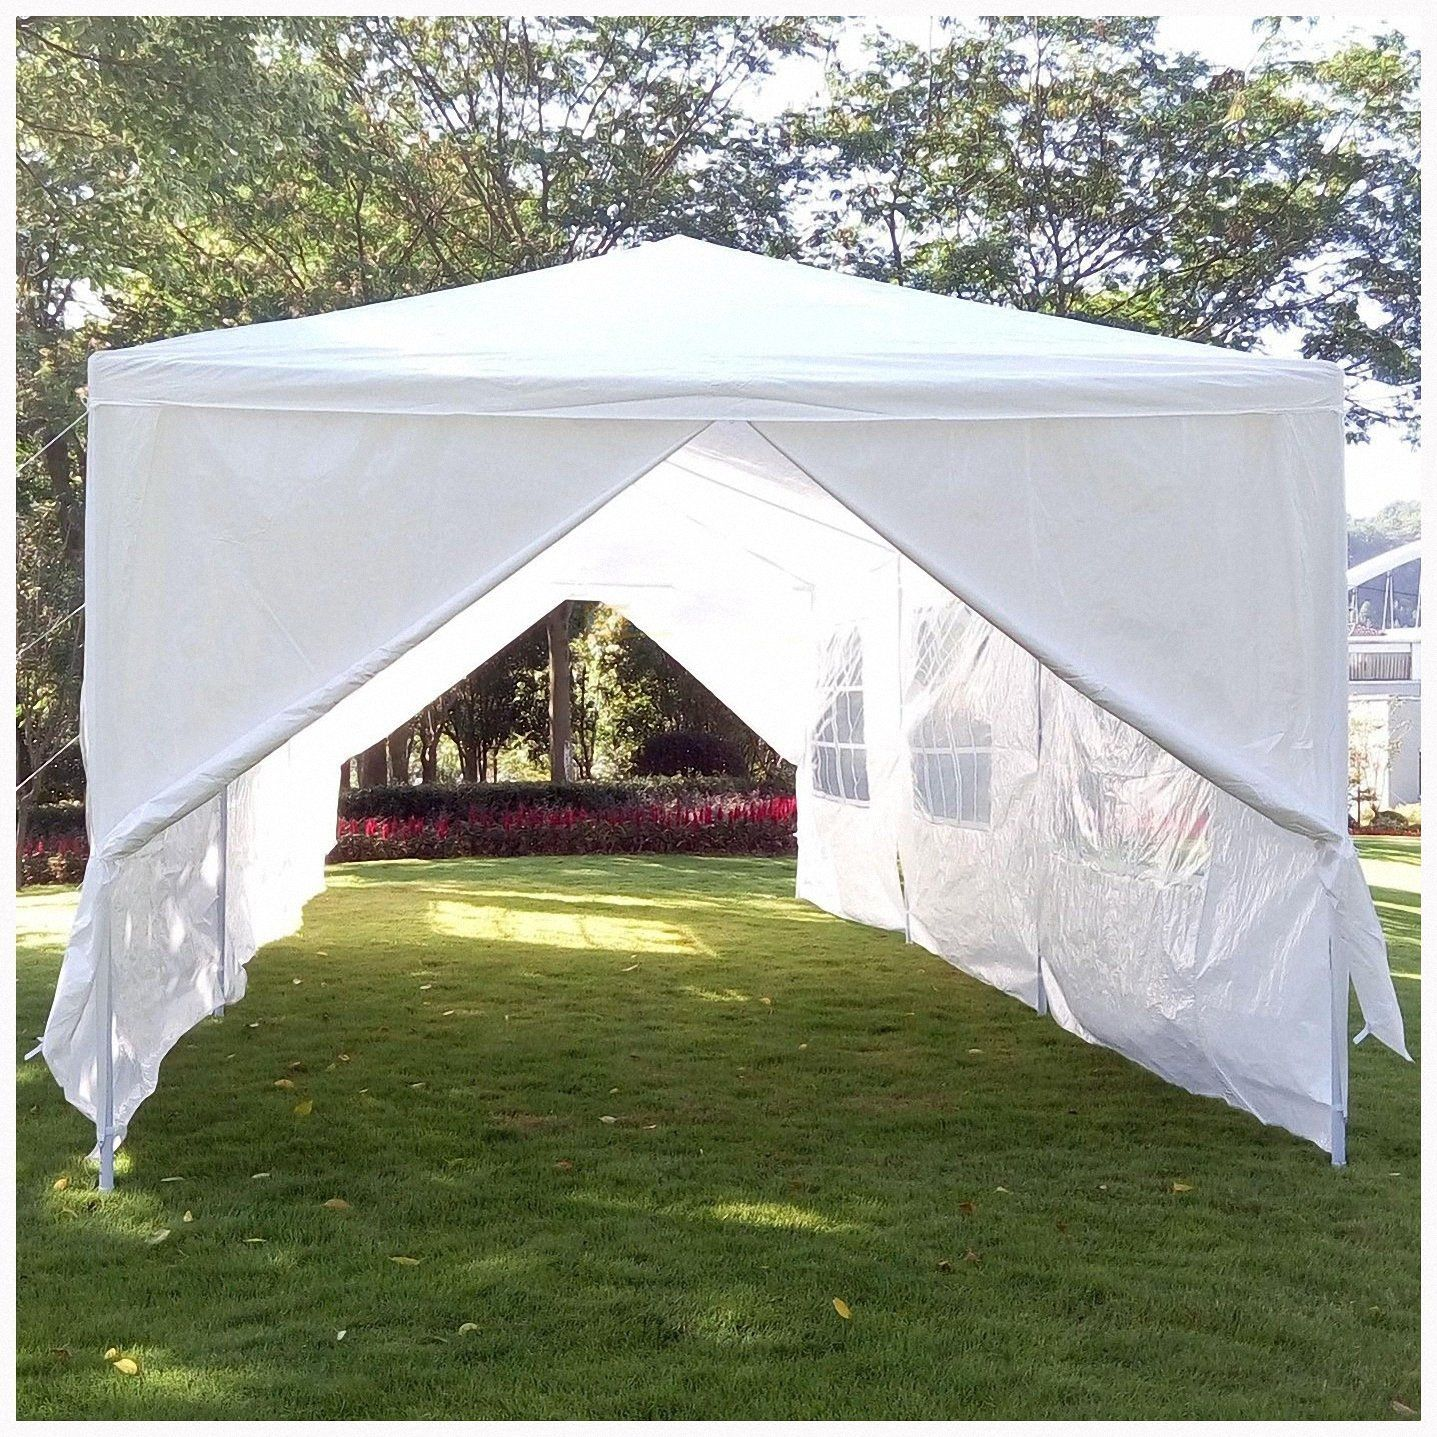 Amazon Com 10 X30 Party Wedding Outdoor Patio Tent Canopy Gazebo Pavilion Events Canopies 8 Side Walls Canopy Tent Outdoor Patio Tents White Canopy Tent